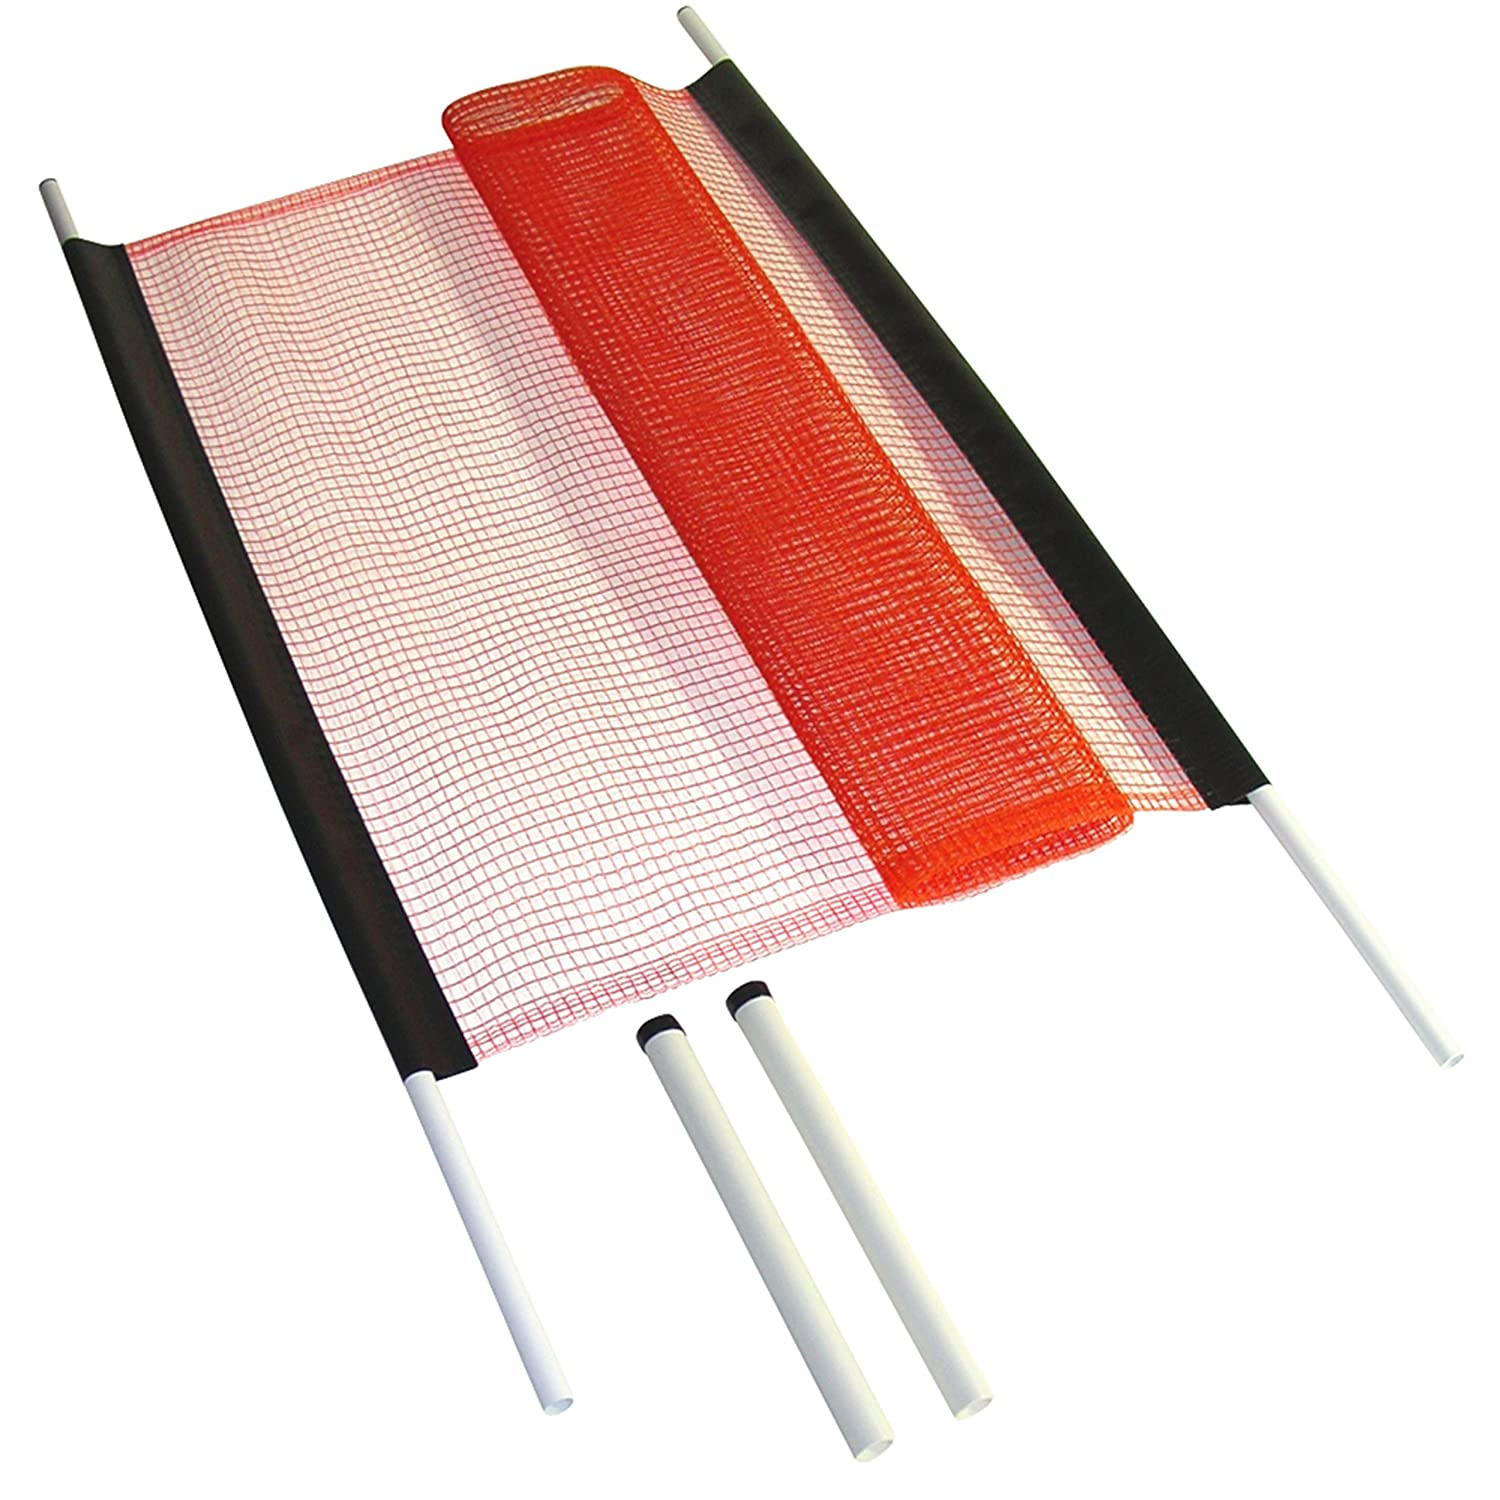 18; Driveway Safety; Child Safety; Outdoor Play; Childproof; Made in USA Kidkusion Non Retractable Driveway Safety Net Orange